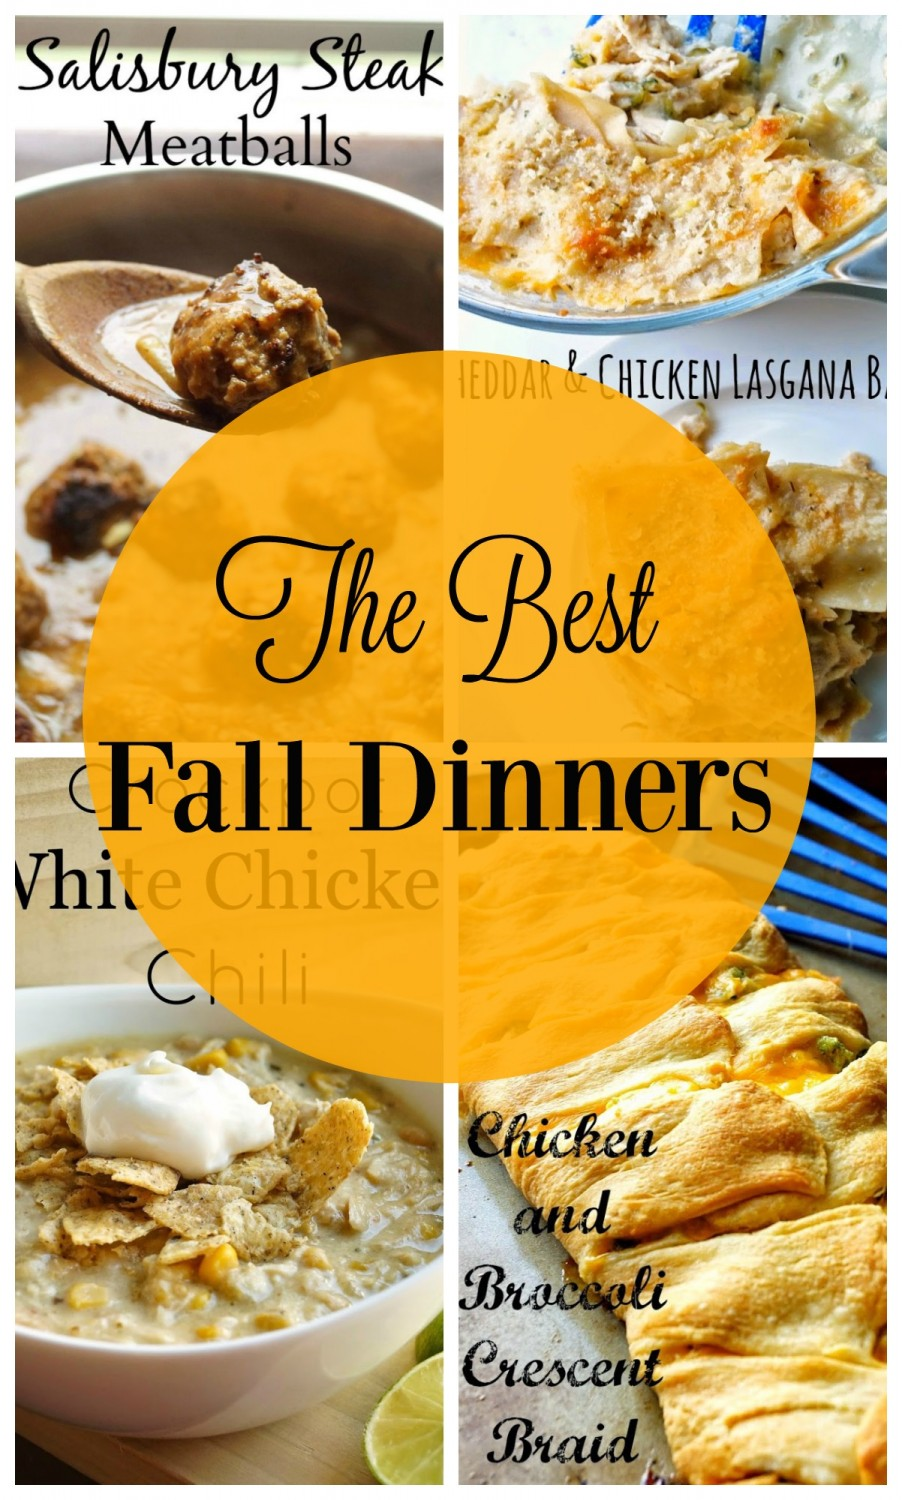 Our favorite fall dinner recipes!